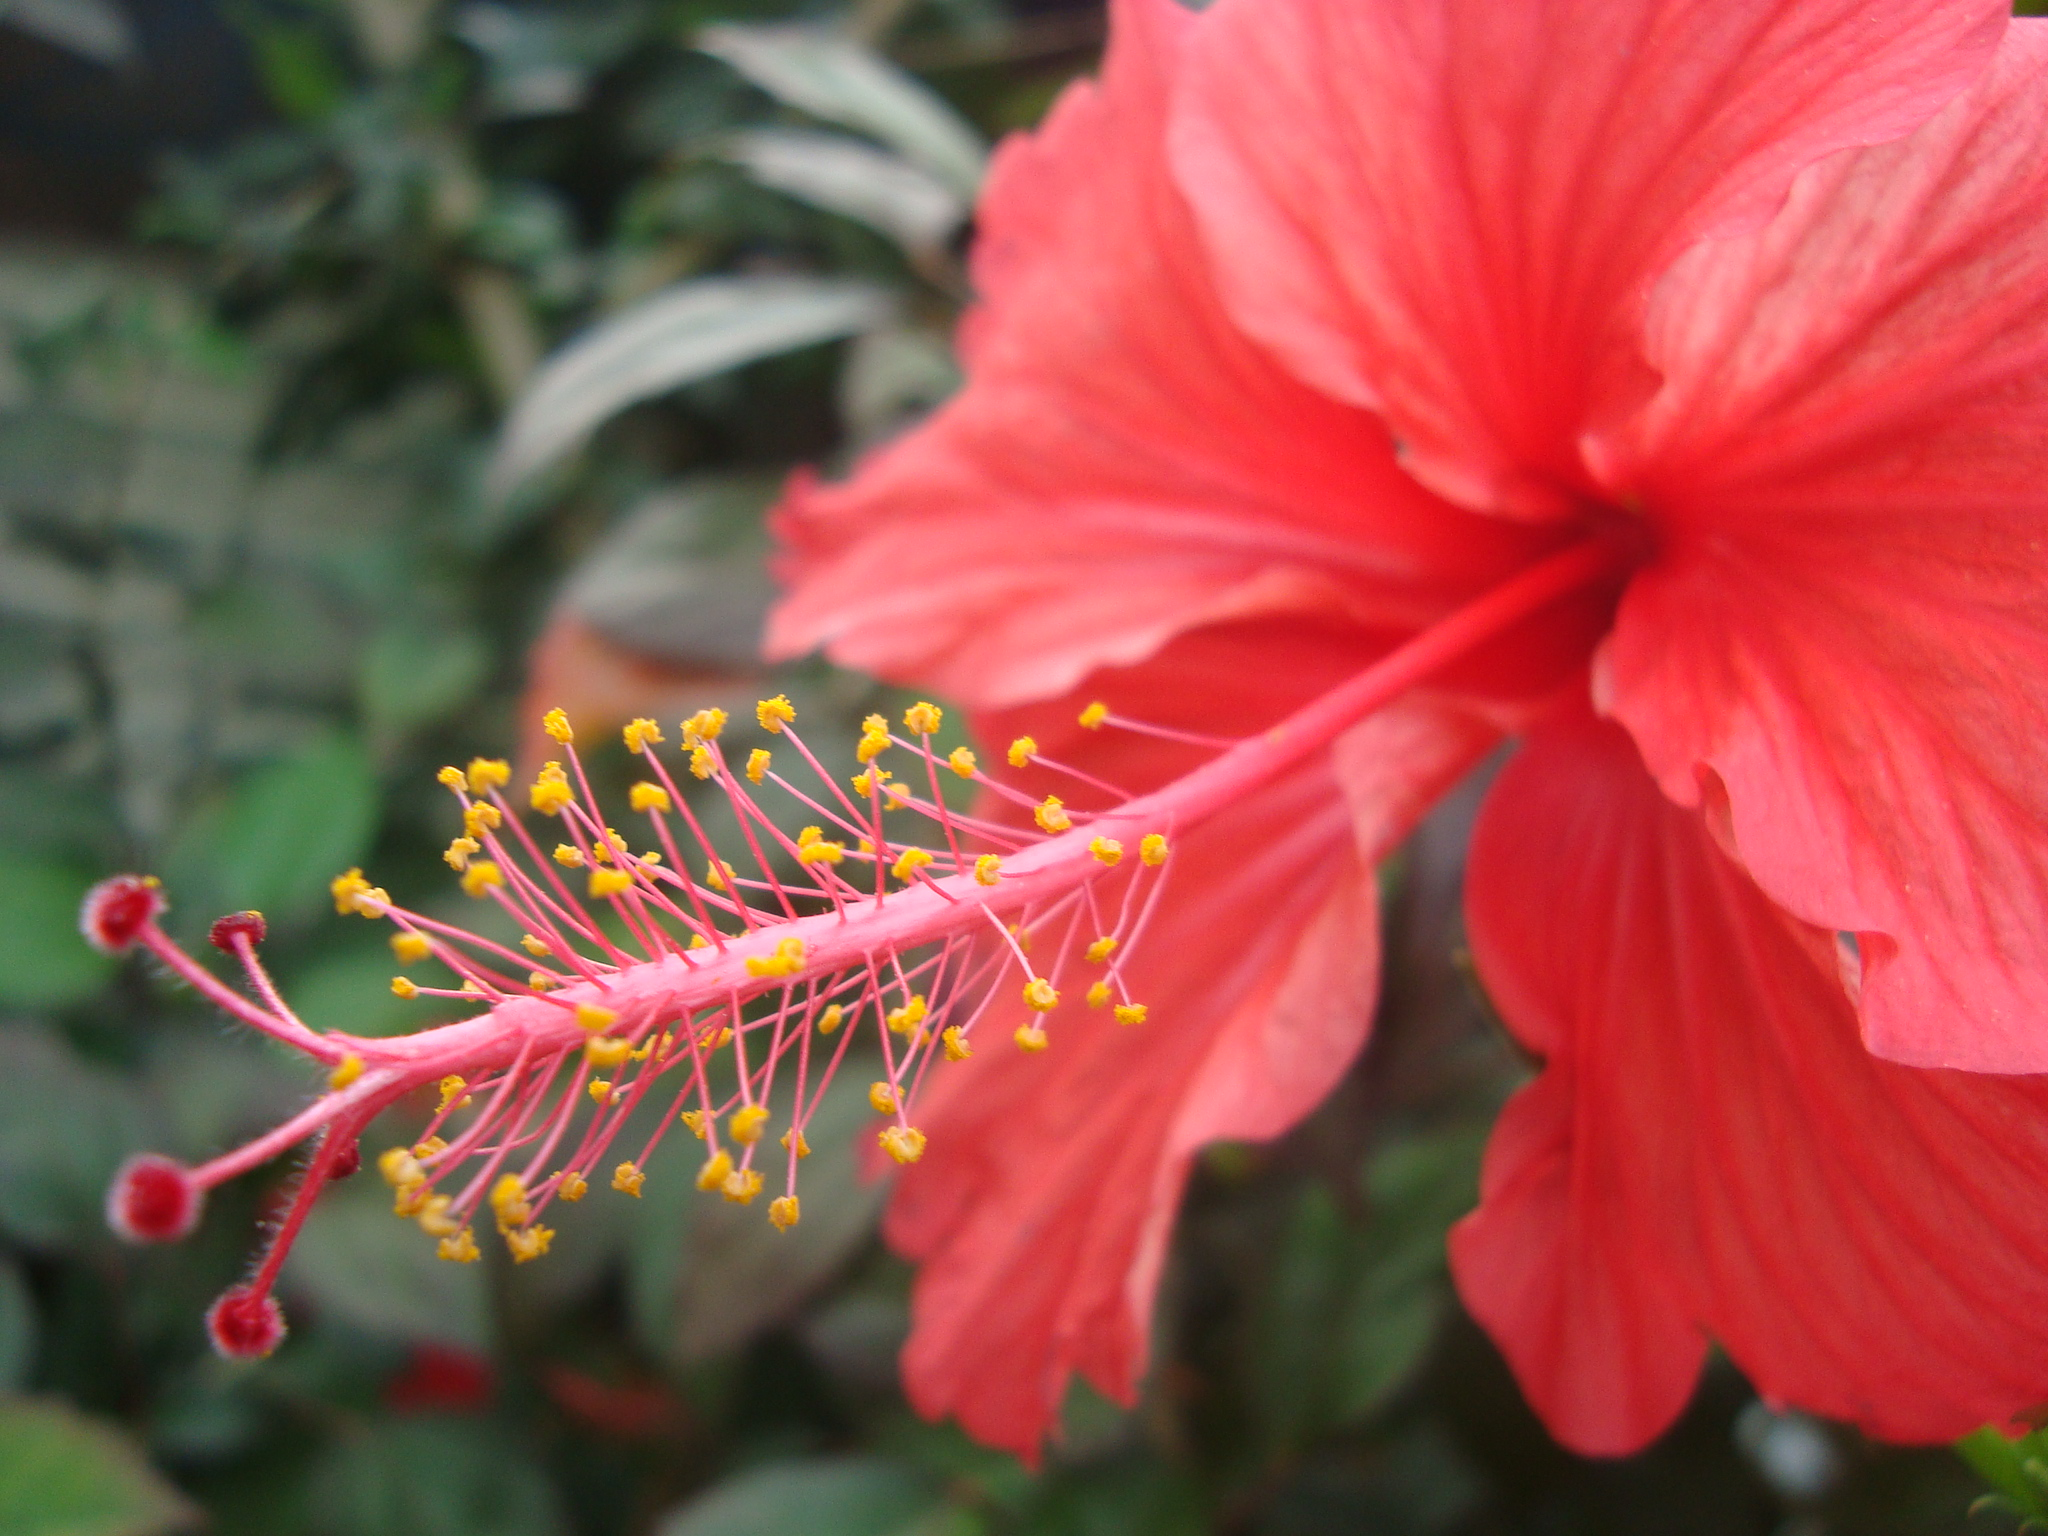 Filehibiscus flowerg wikimedia commons filehibiscus flower izmirmasajfo Gallery